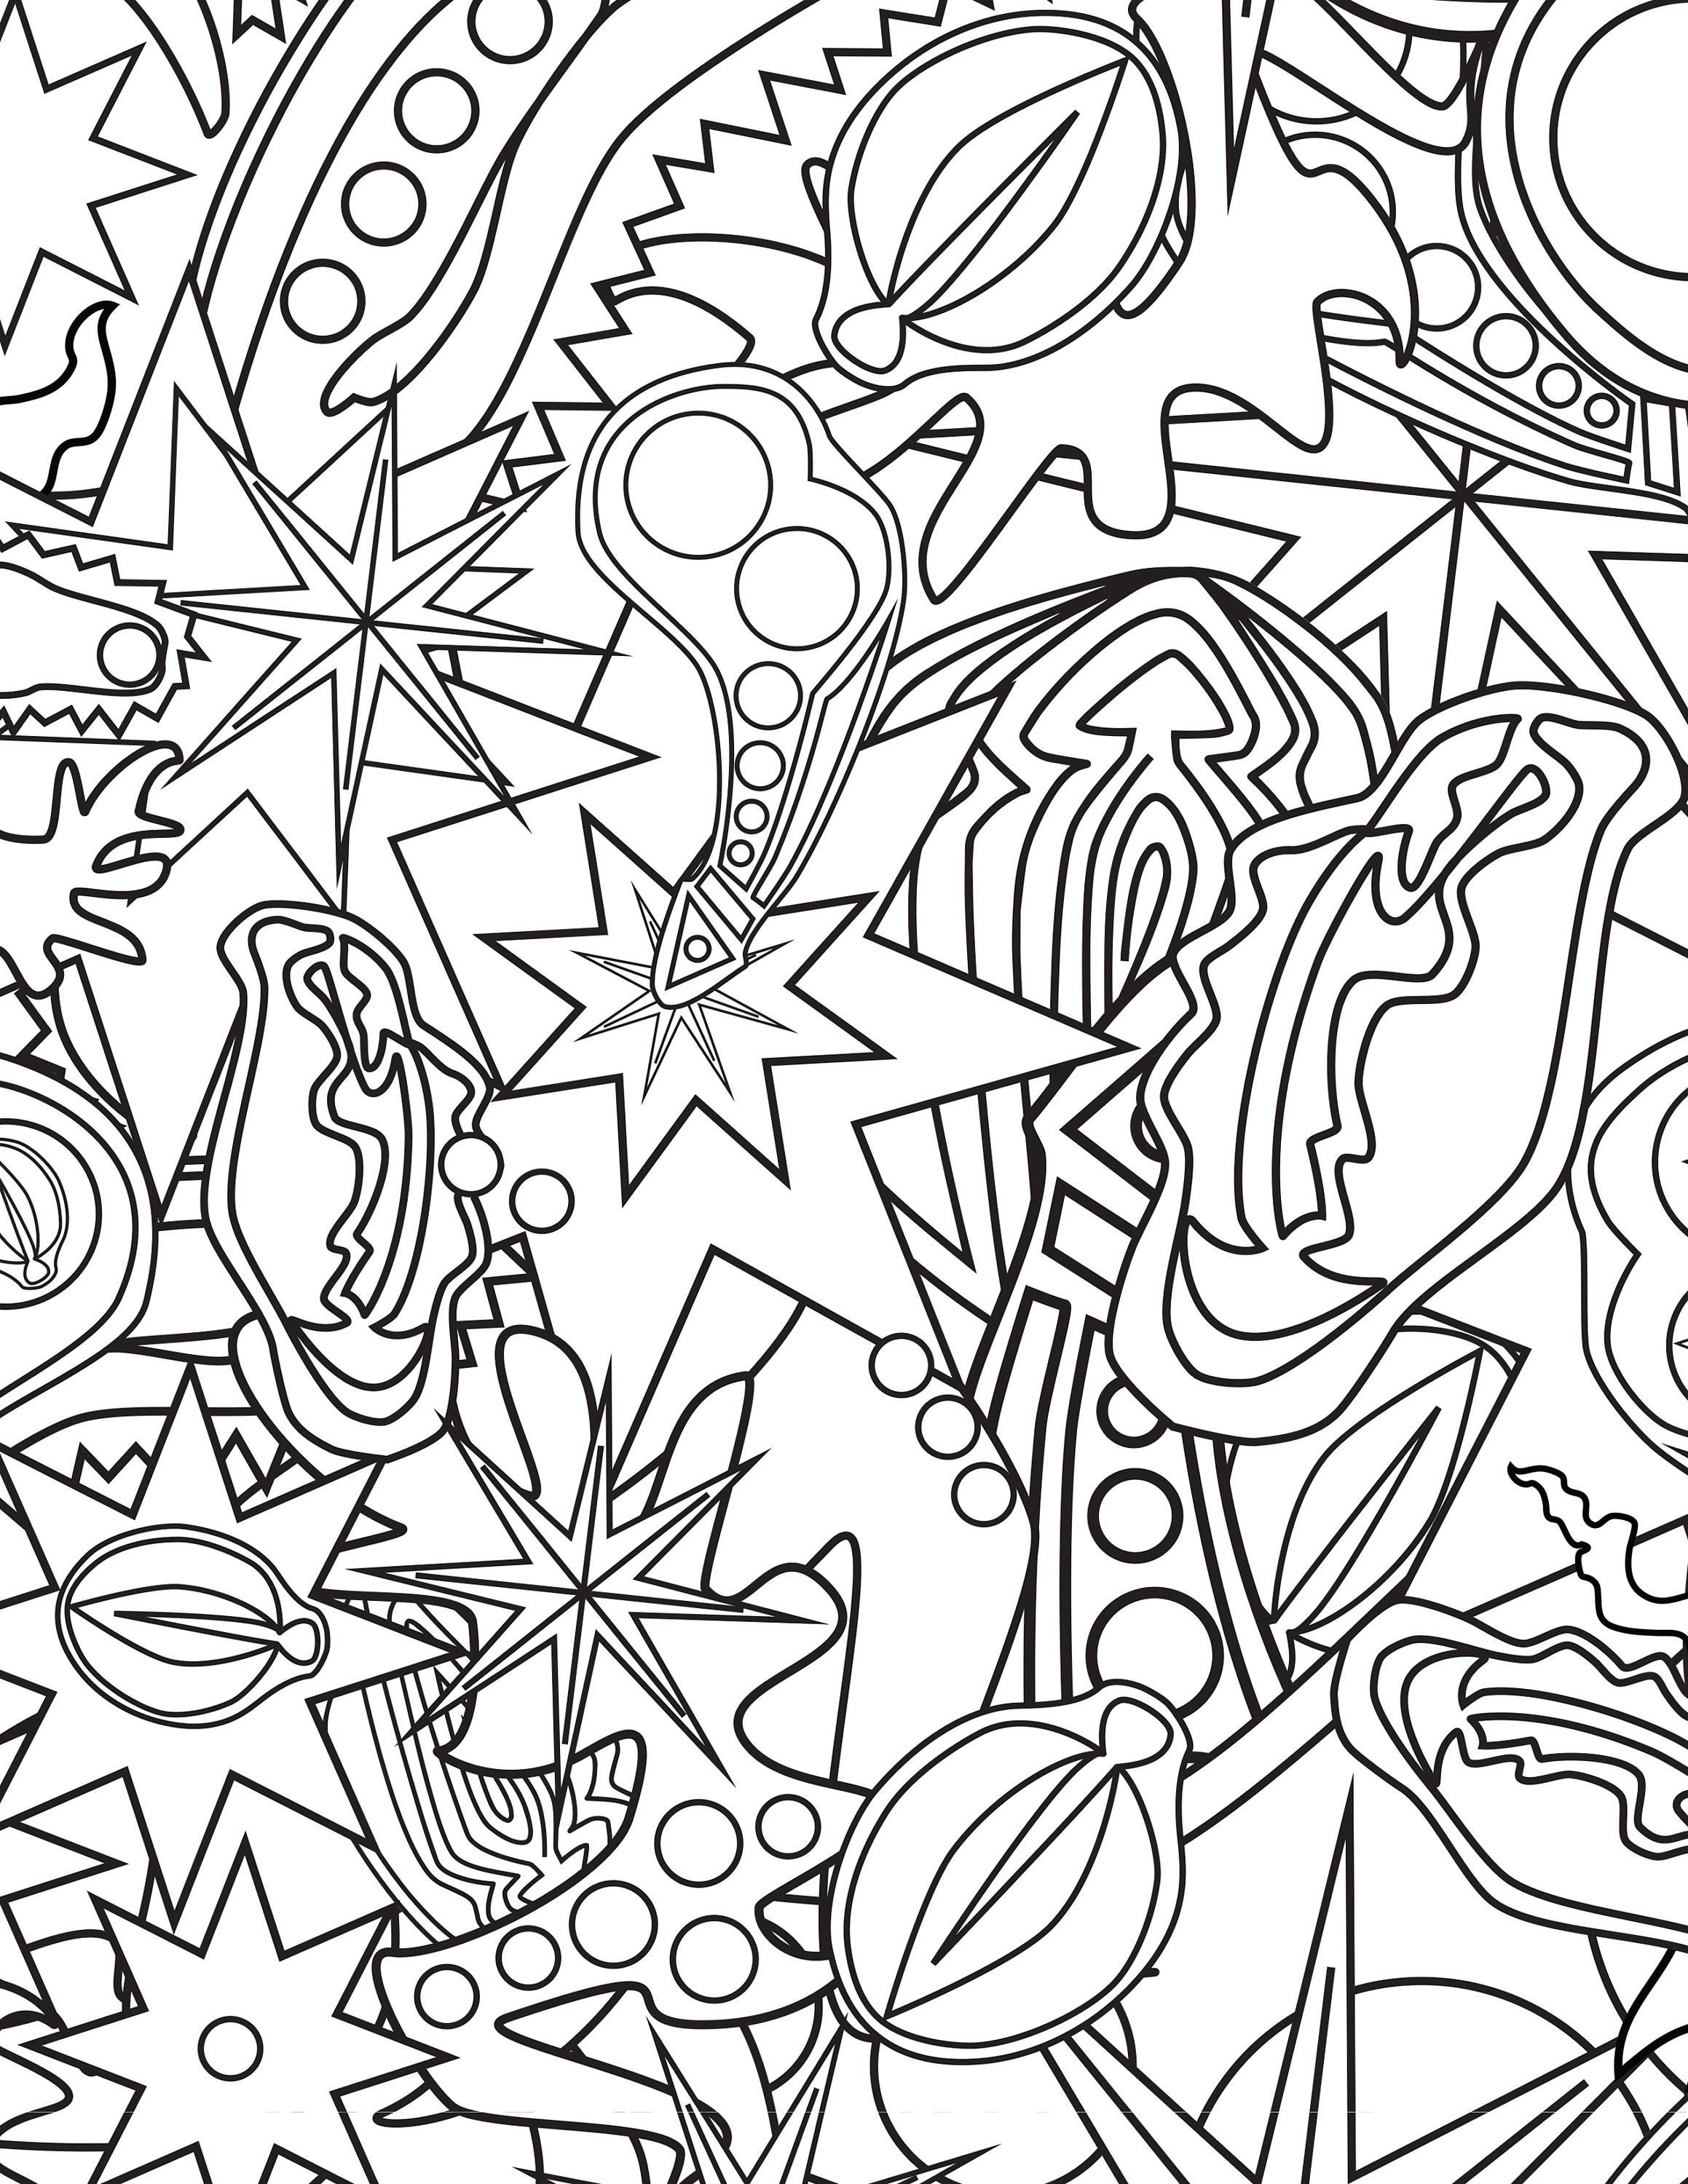 Adult Naughty Coloring Page 3 Pack Abstract Geometric Pop